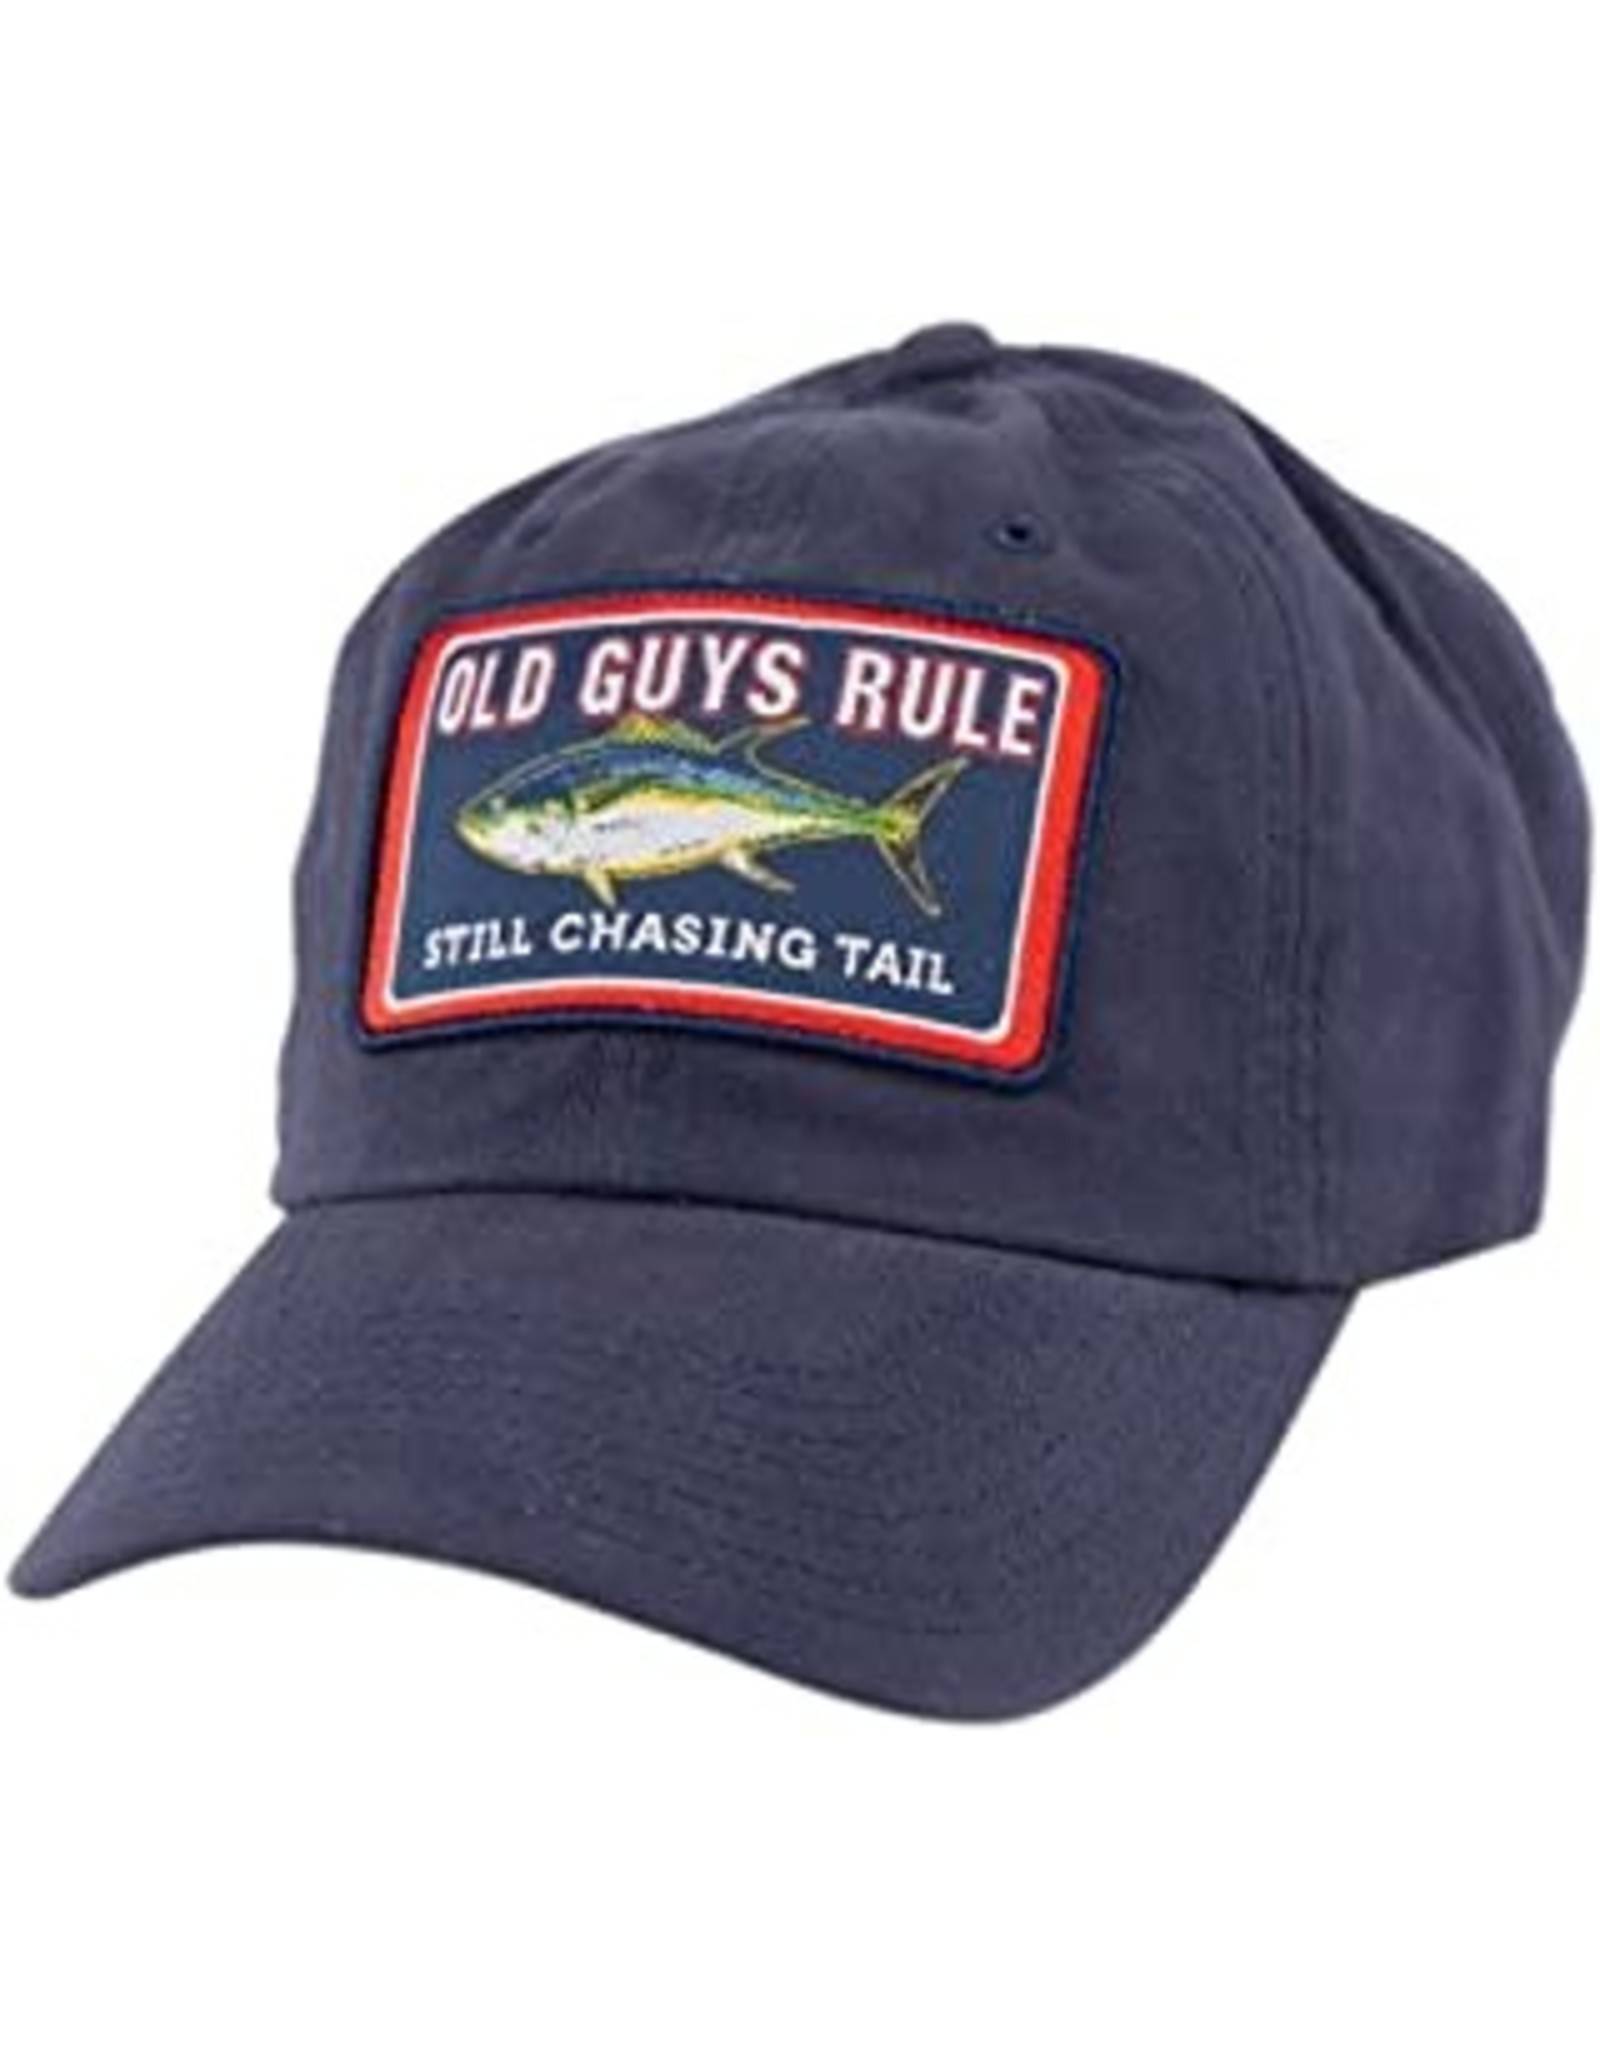 Old Guys Rule Hat- OG Chasing Tail